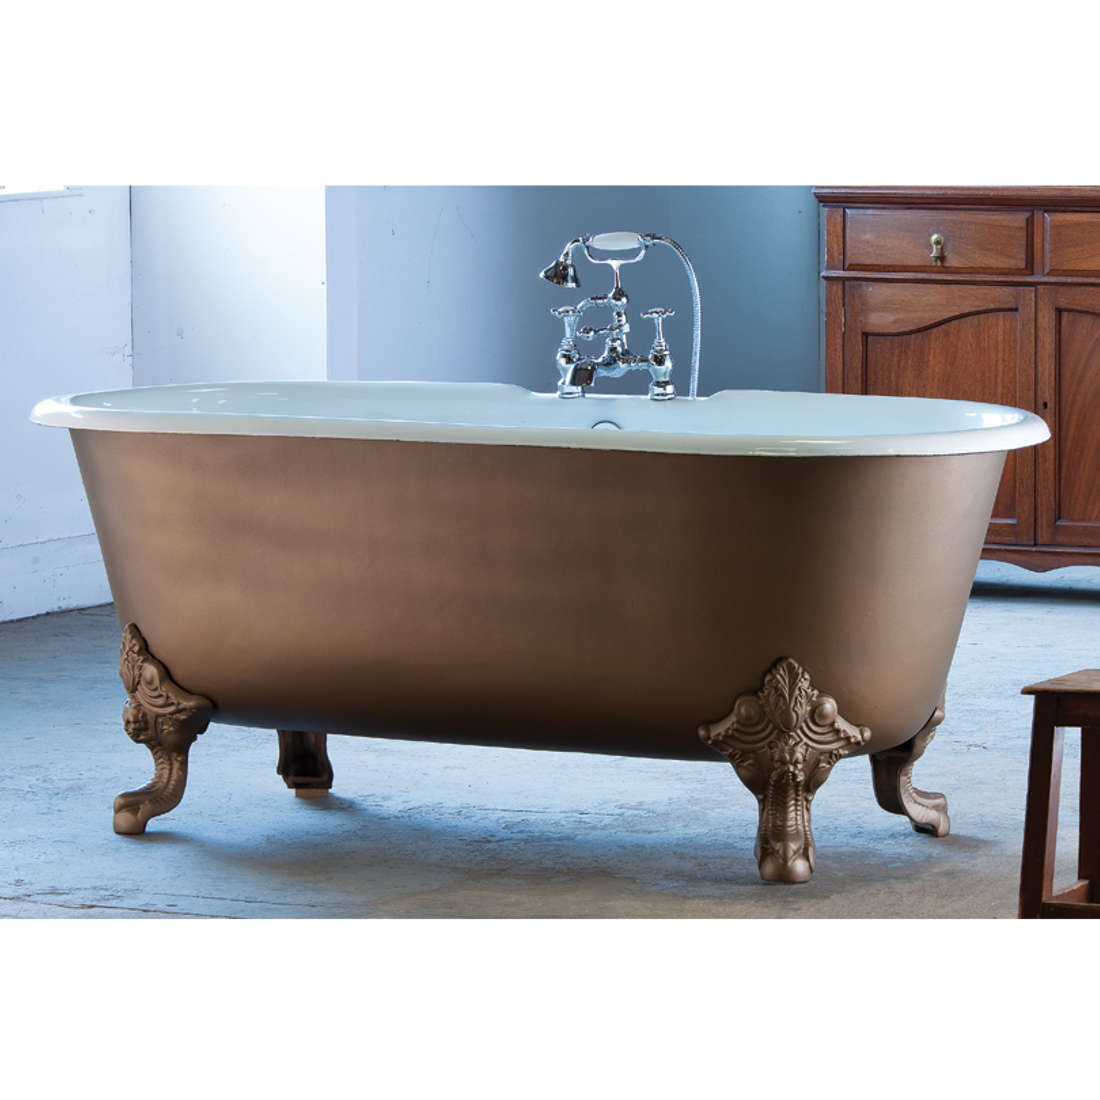 An image of Arroll Baths - The Cheverny Bath - Roll Top Bath - Cream